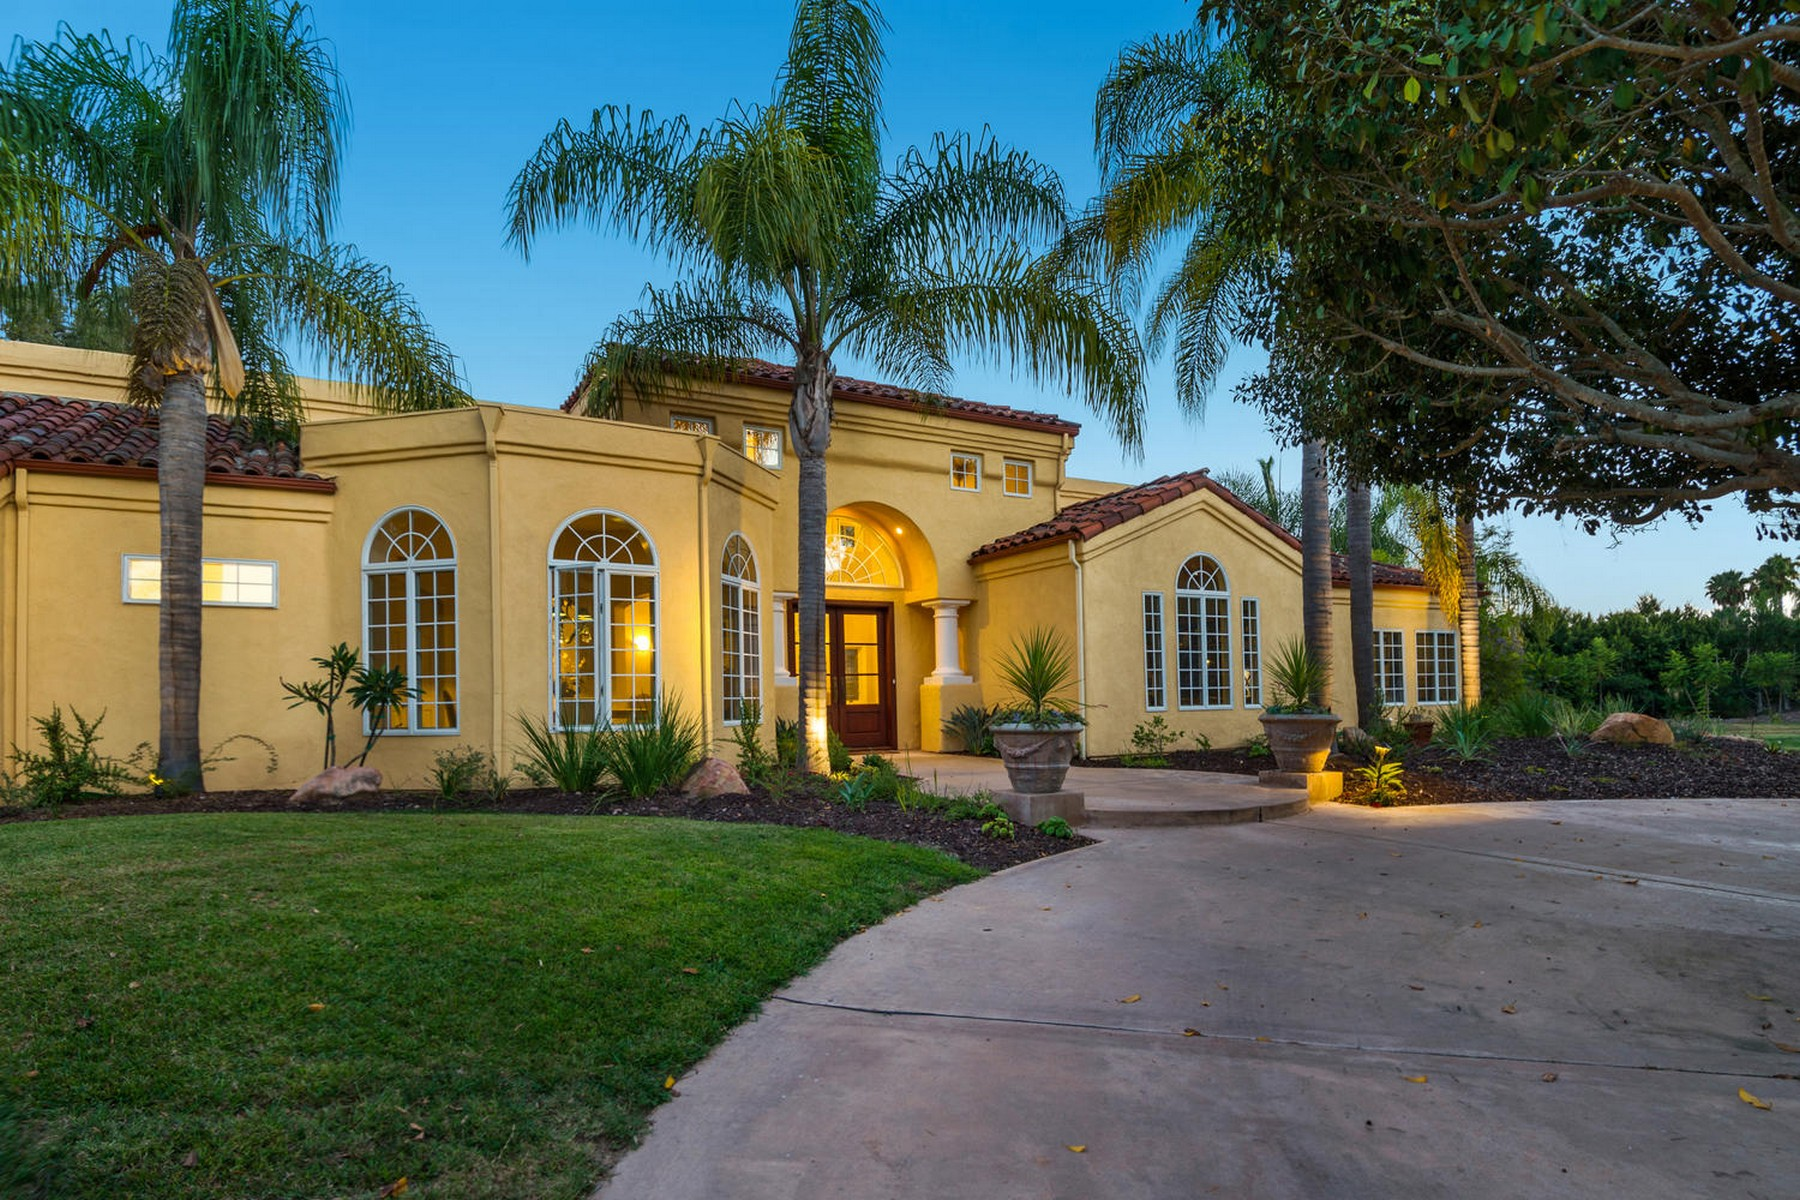 Single Family Home for Sale at 14955 Rancho Santa Fe Farms Road Rancho Santa Fe, California 92067 United States